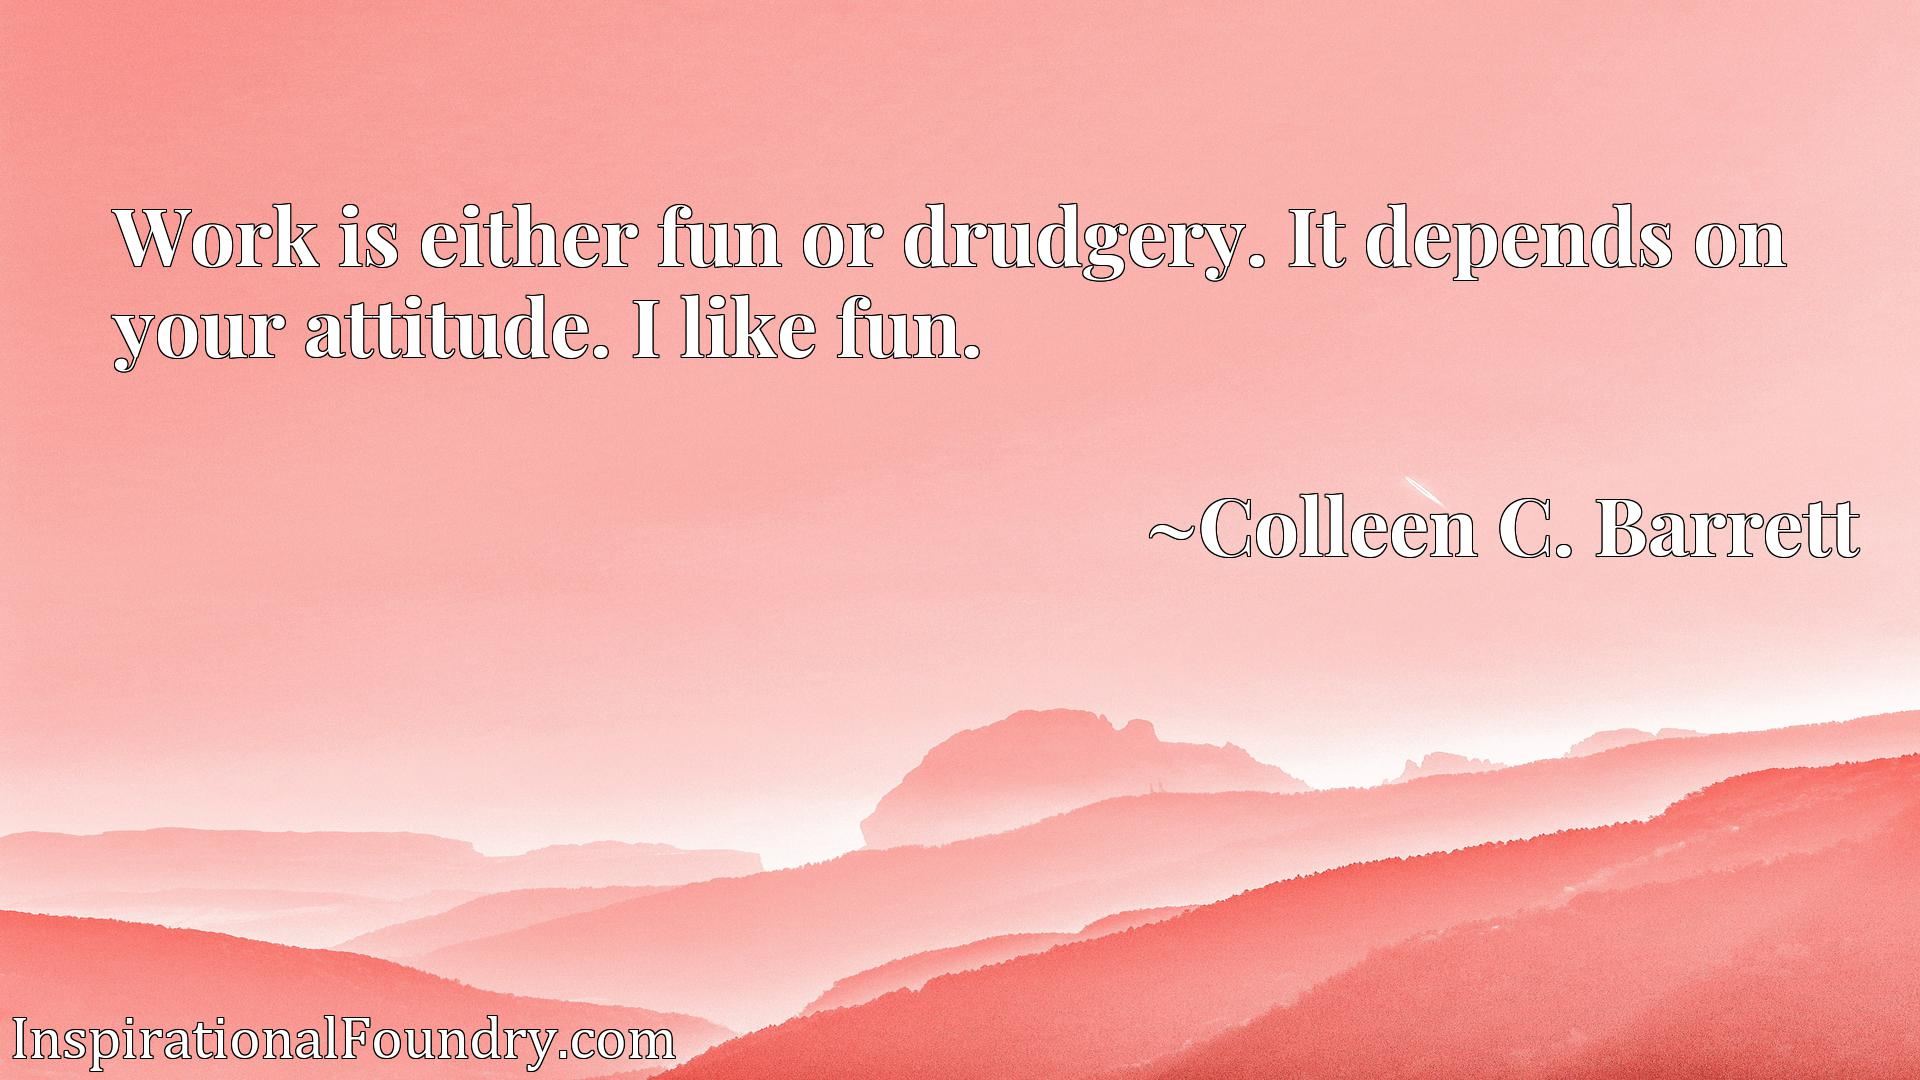 Work is either fun or drudgery. It depends on your attitude. I like fun.